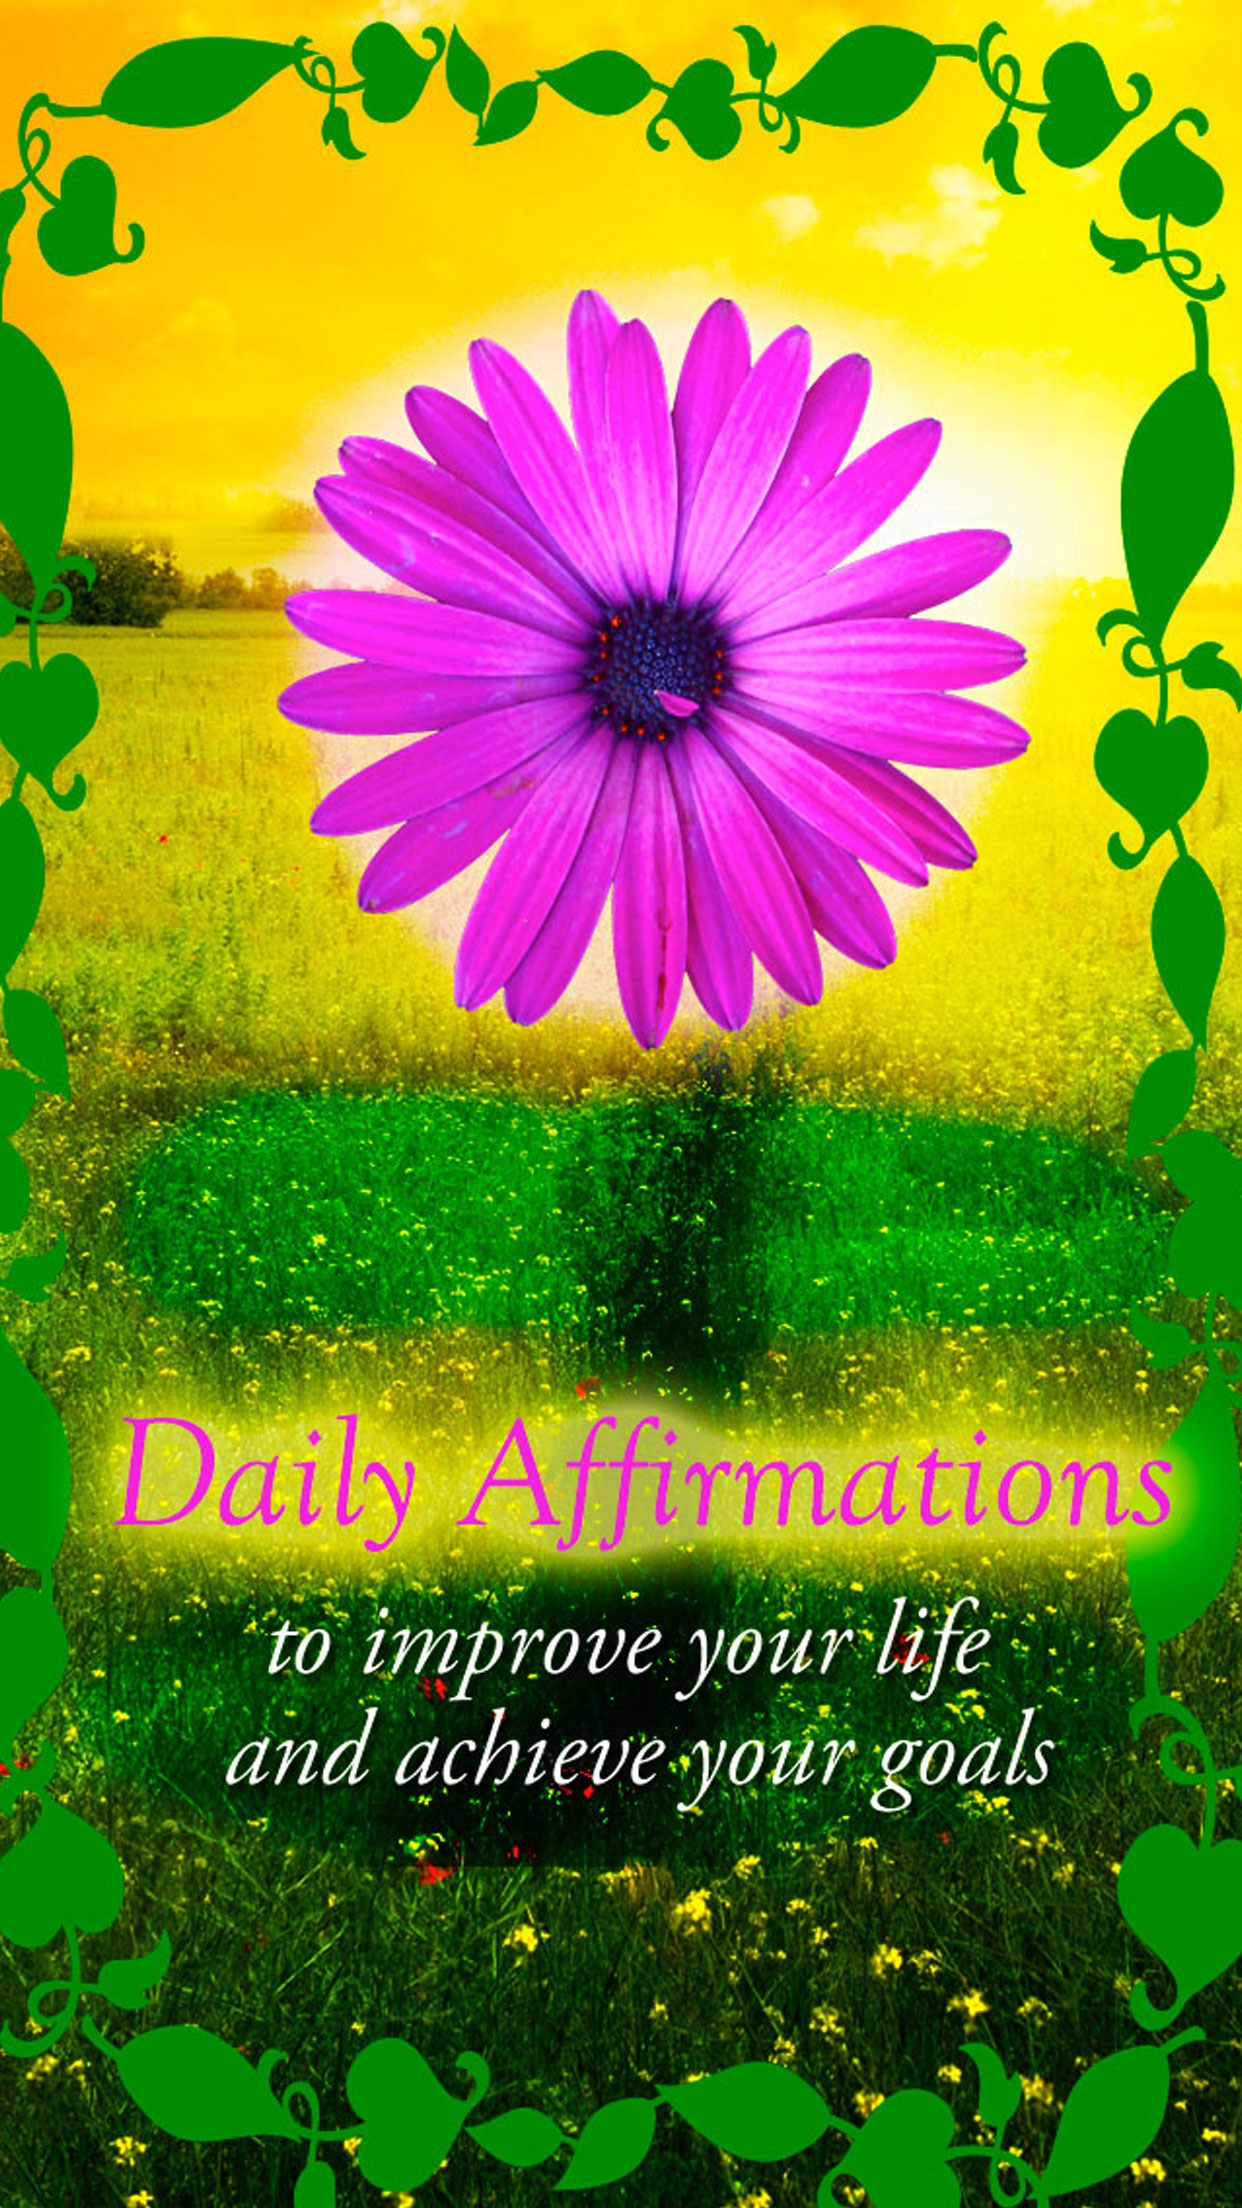 Affirmations - Daily Affirmations To Improve Your Life Screenshot